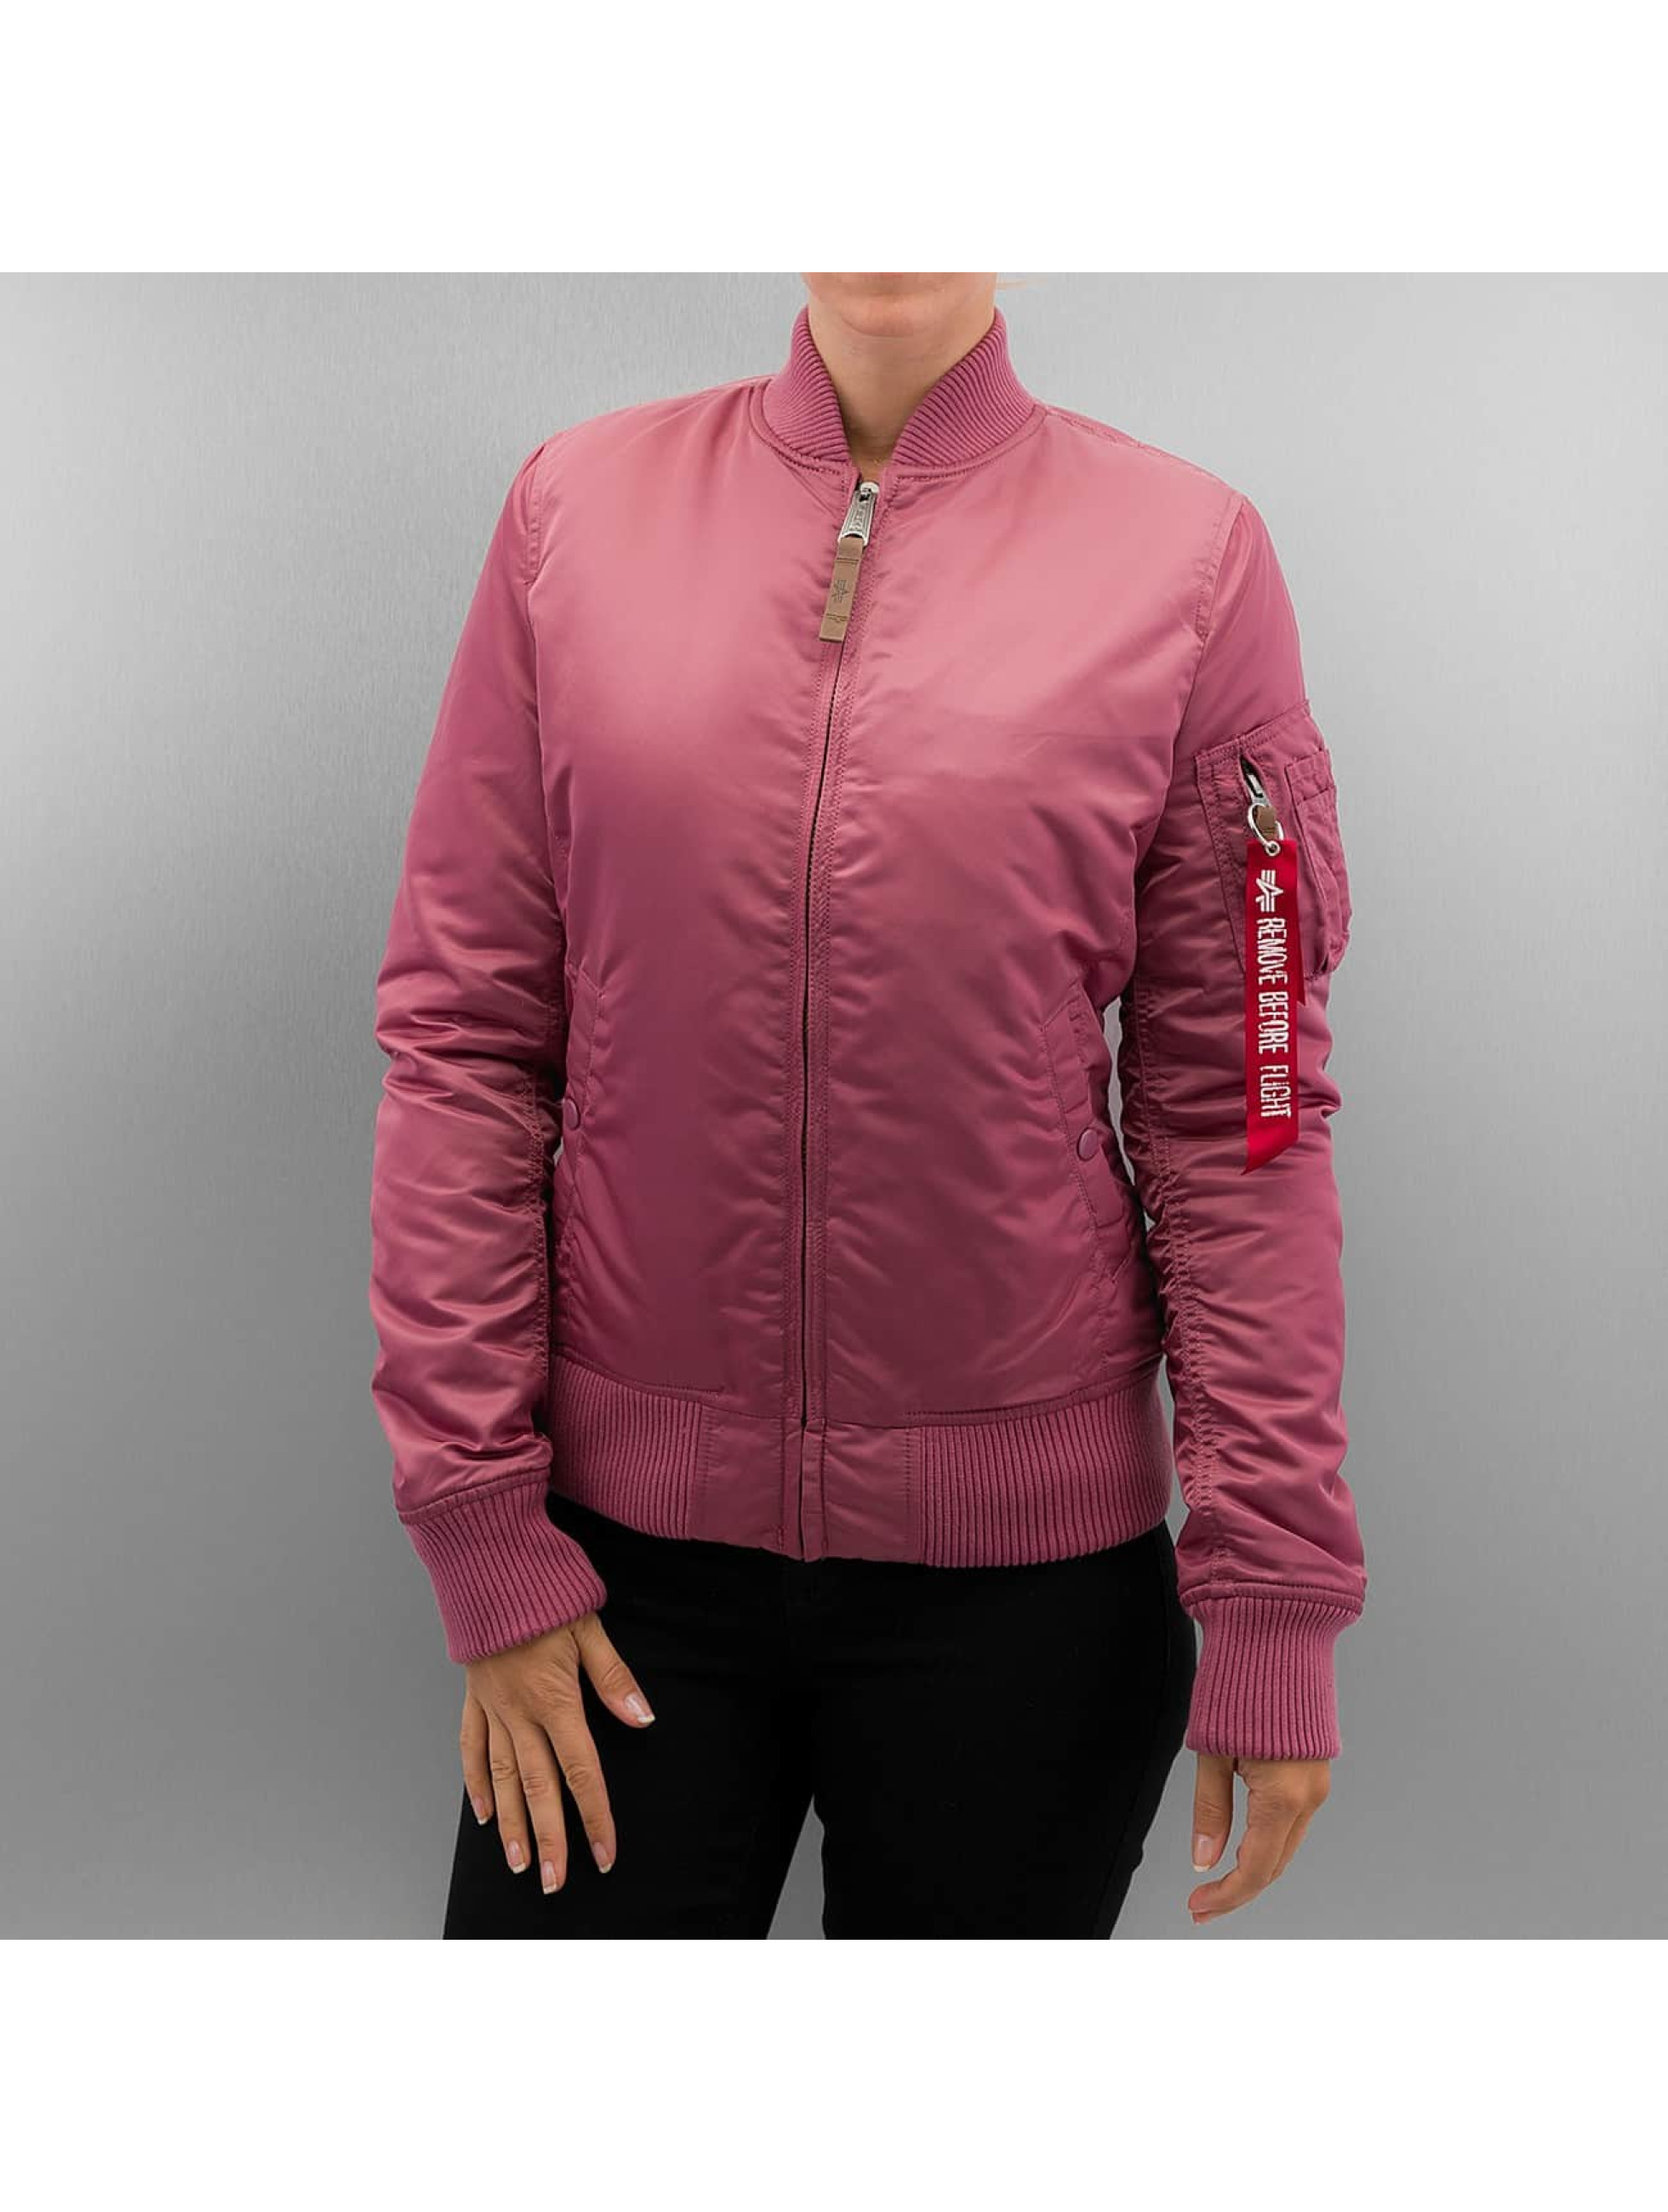 Alpha Industries Bomber jacket Ma 1 VF 59 pink